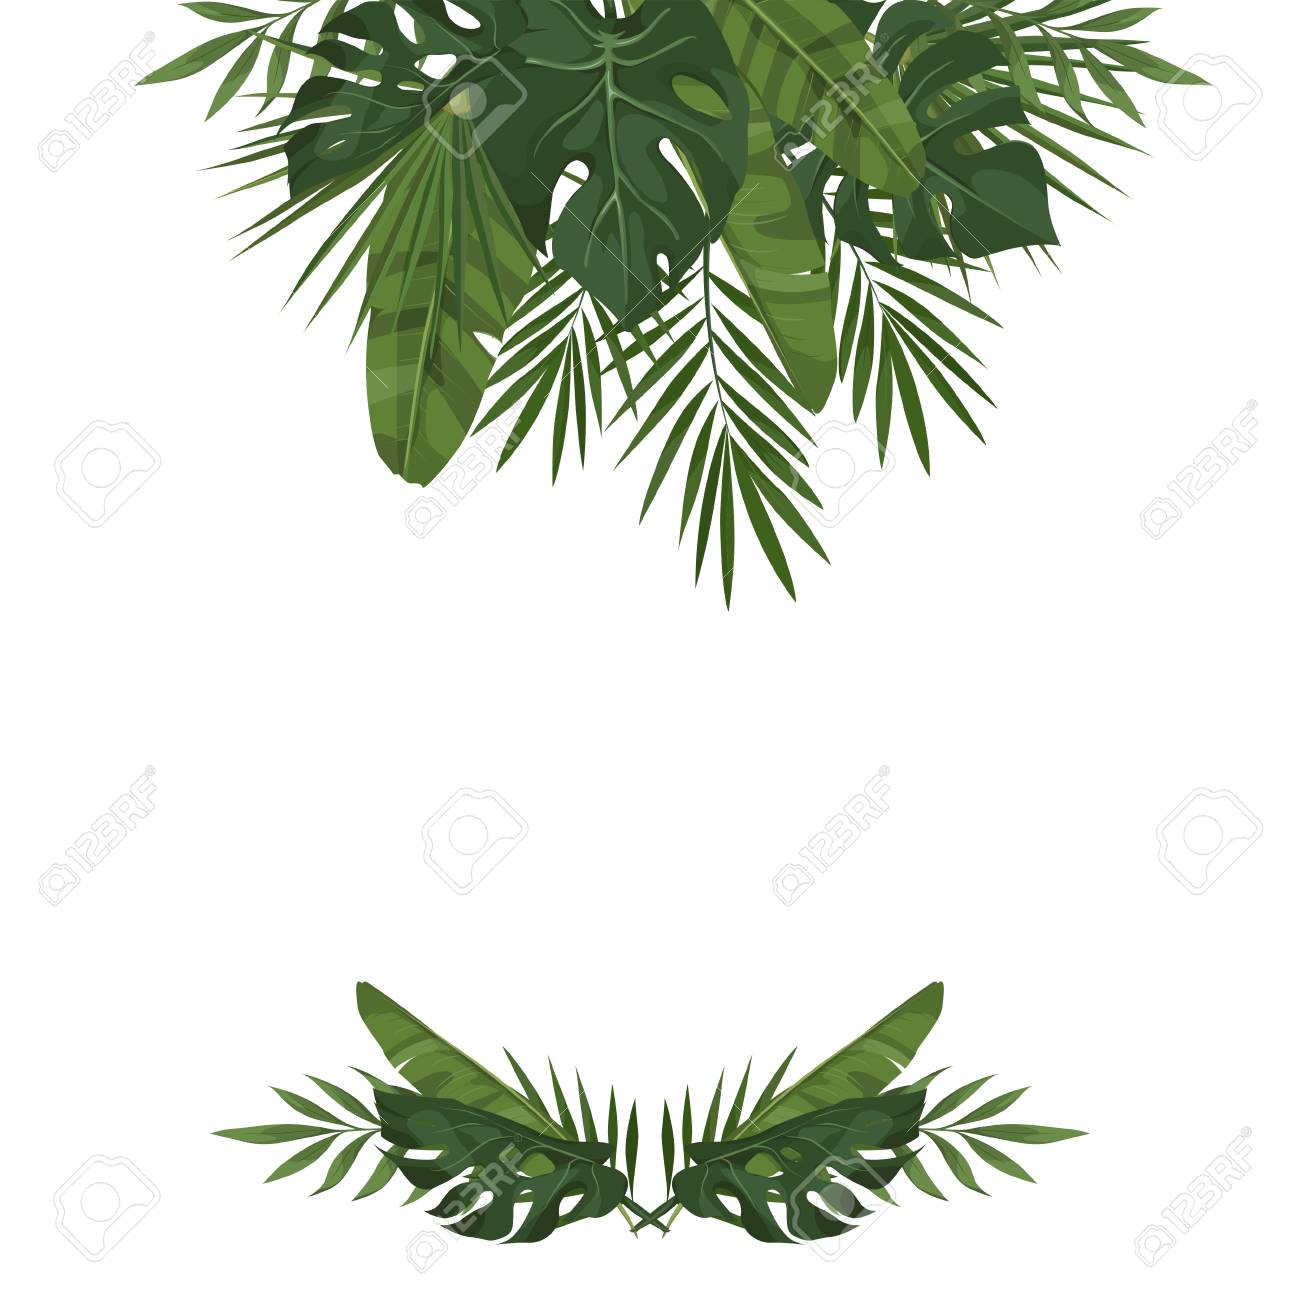 Vector Template With Tropical Leaves Trendy Summer Tropical Royalty Free Cliparts Vectors And Stock Illustration Image 80959165 Free mockups and templates in psd. vector template with tropical leaves trendy summer tropical